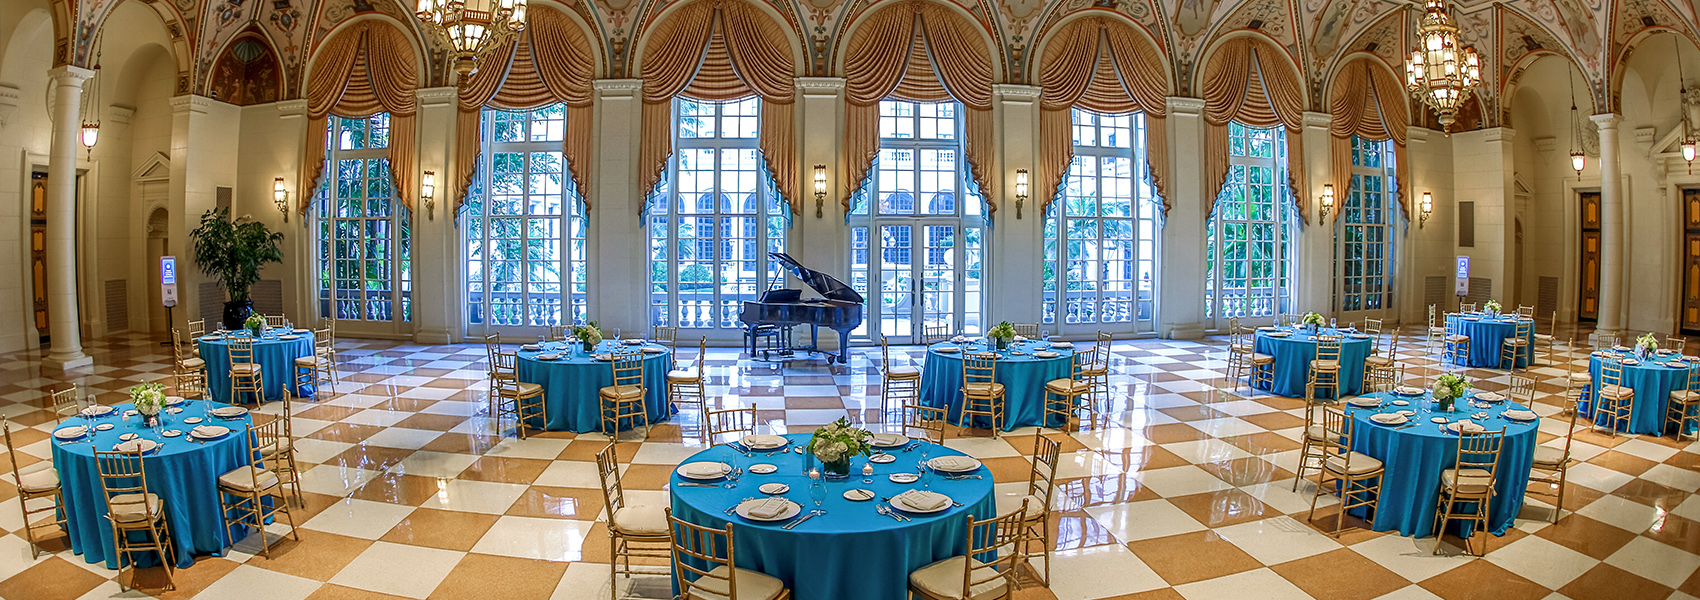 The Mediterranean Ballroom decorated for a special event at The Breakers